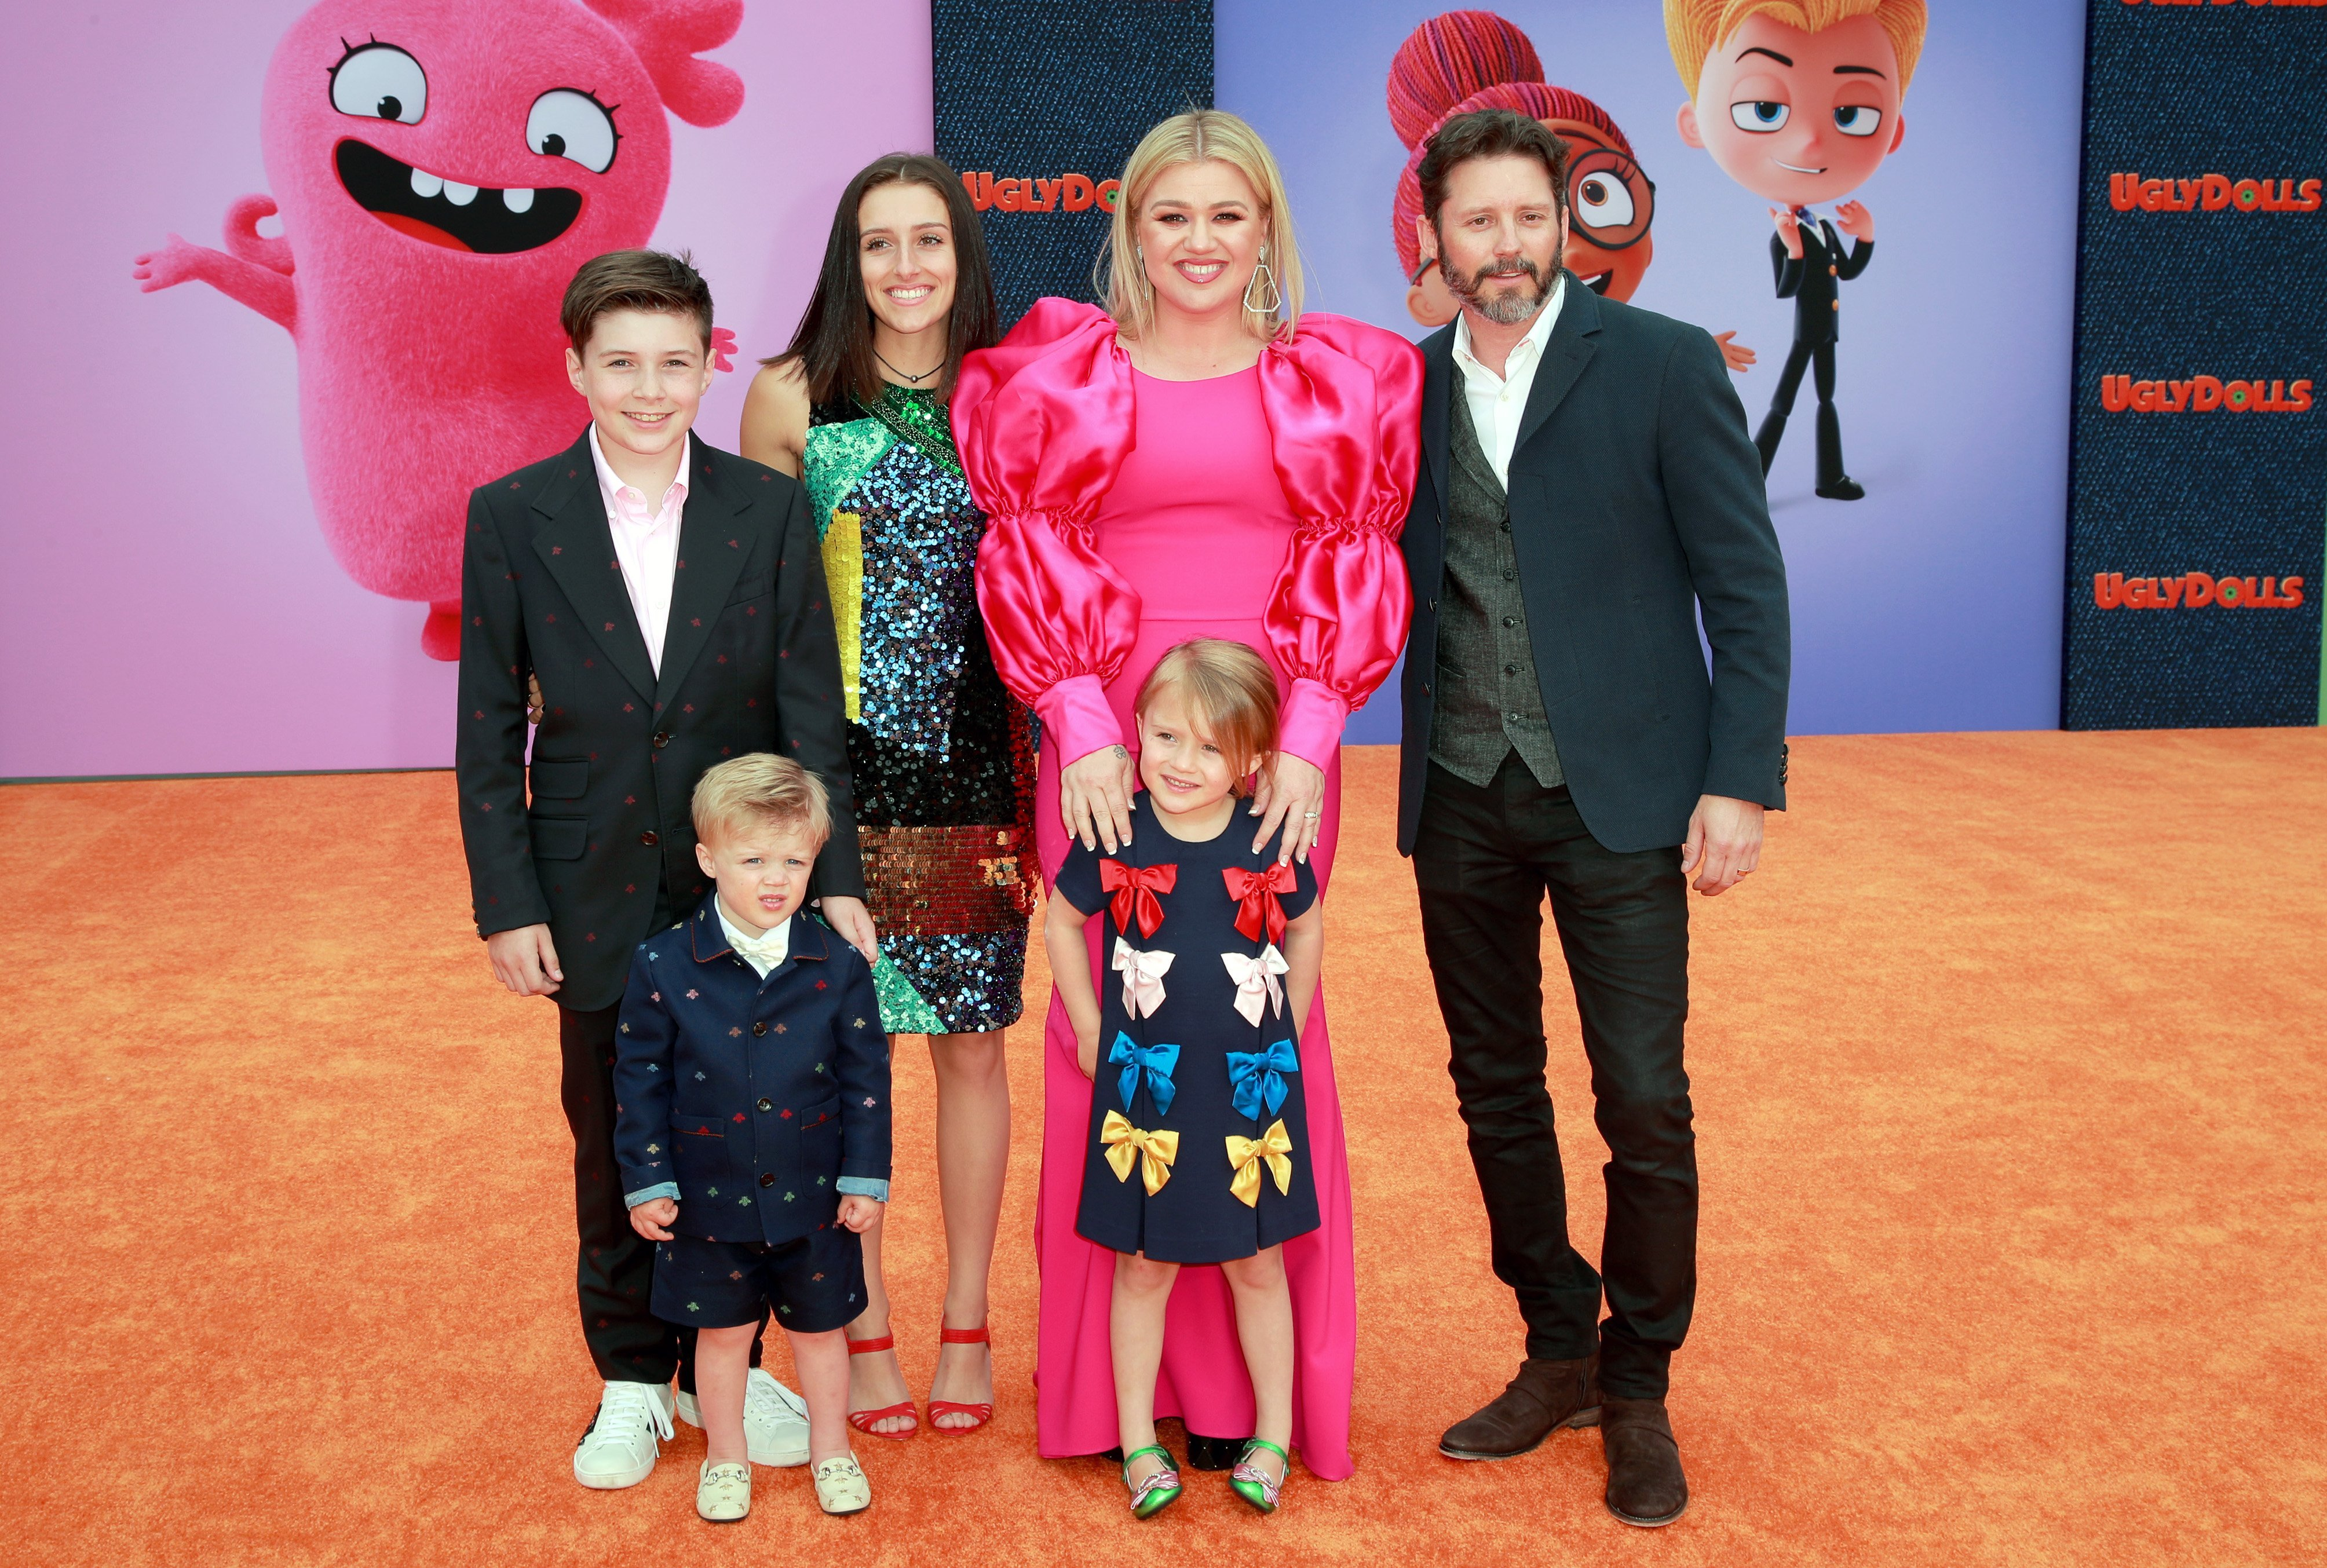 """Kelly Clarkson with husband Brendon Blackstock, daughters River Rose Blackstock and Remington Alexander Blackstock, and stepchildren Seth and Savannah Blackstock at the premiere of """"UglyDolls"""" in Los Angeles on April 27, 2019 